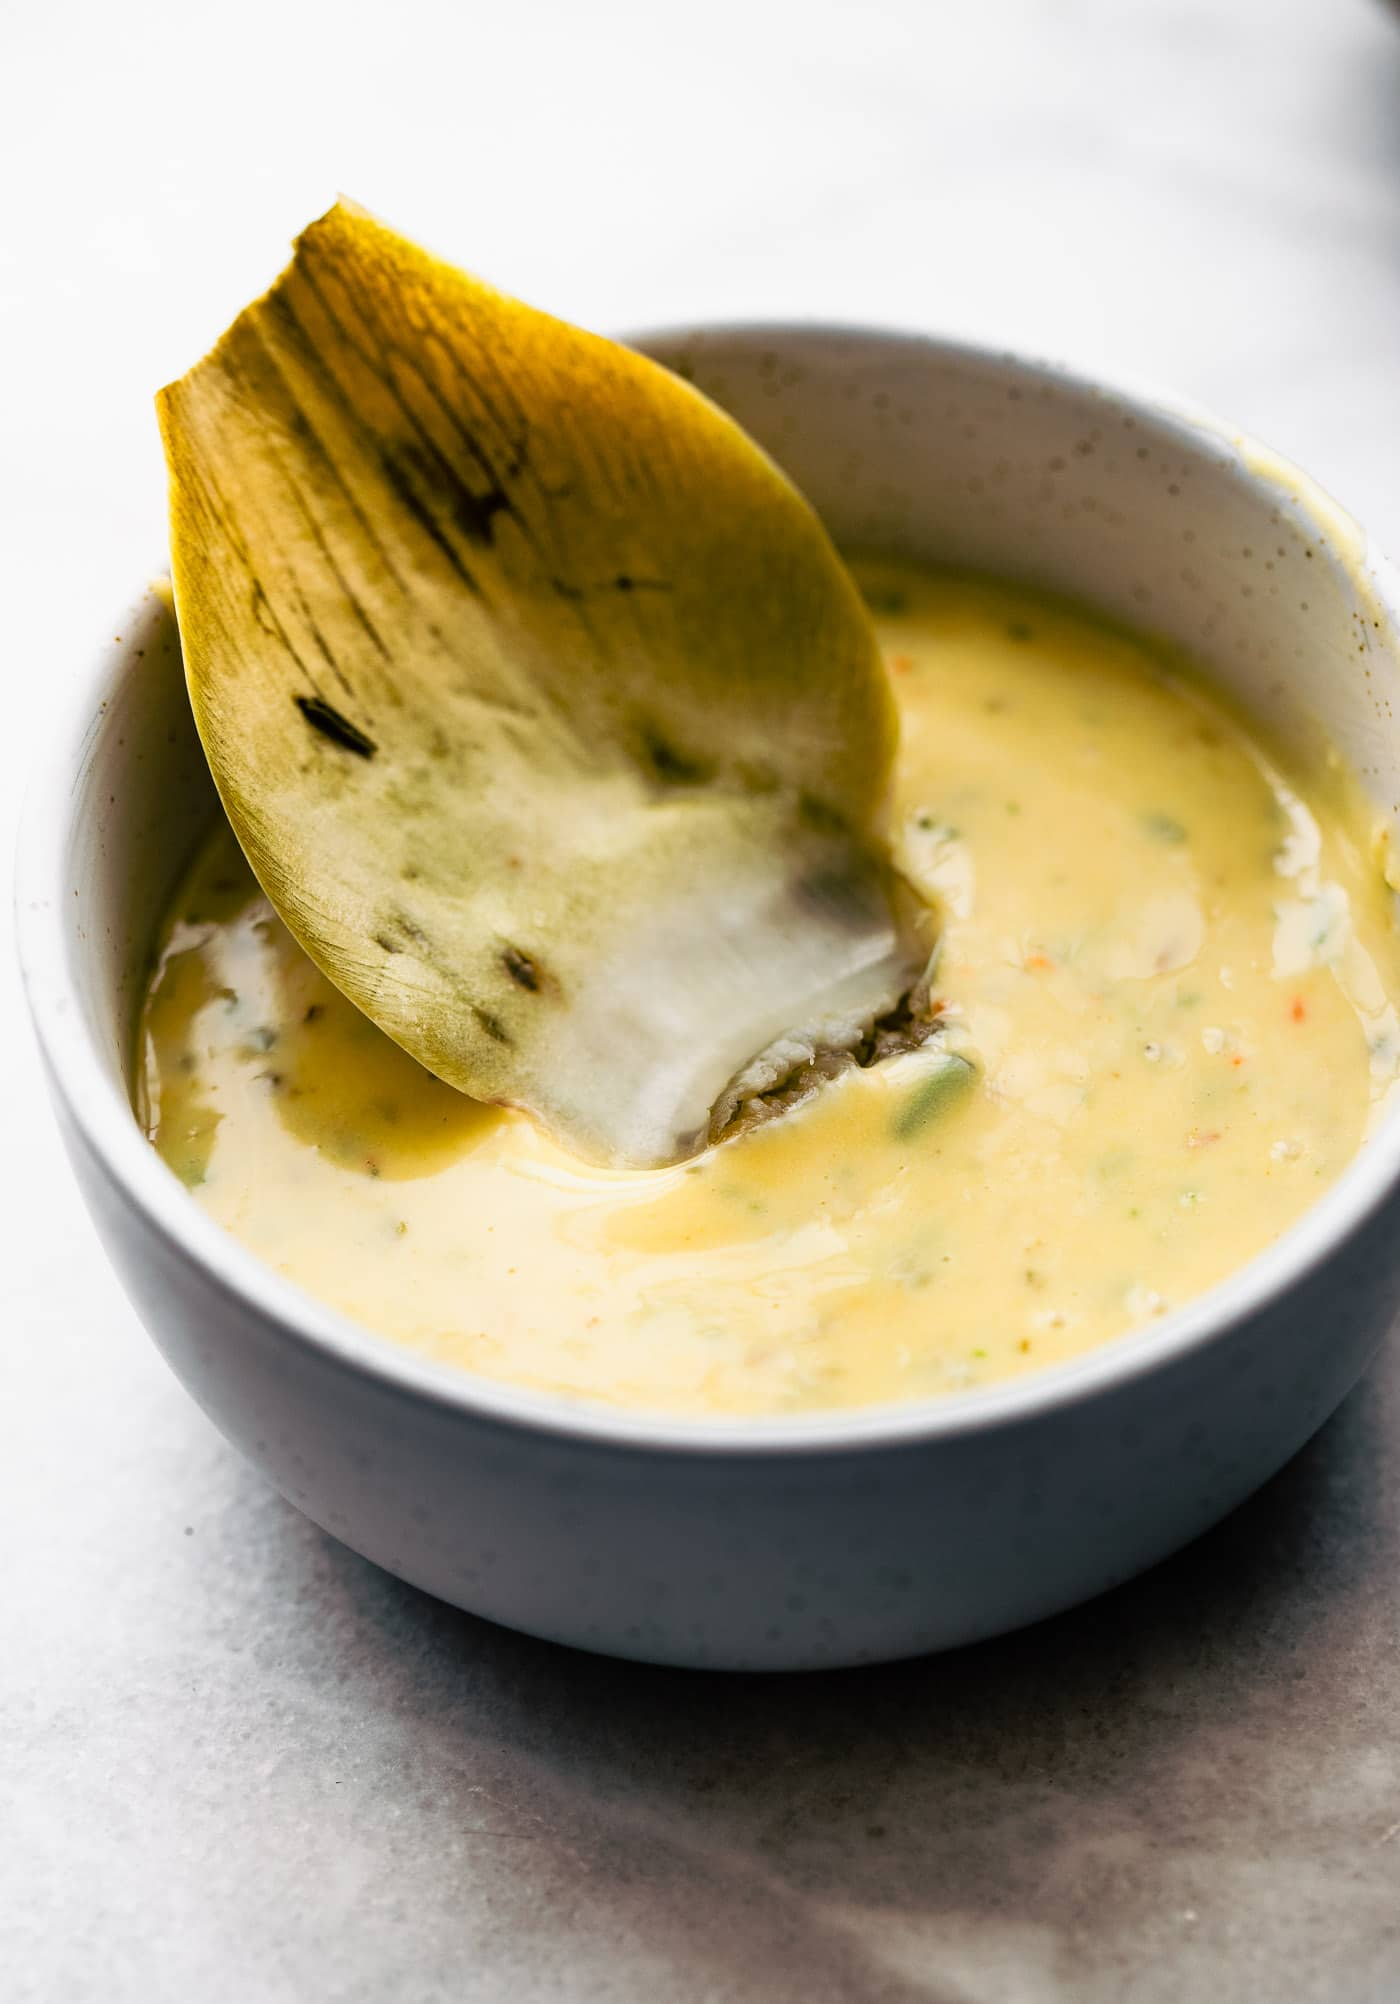 A close up image of a small bowl with garlic and herb aioli as a condiment for dipping artichokes and other vegetables.